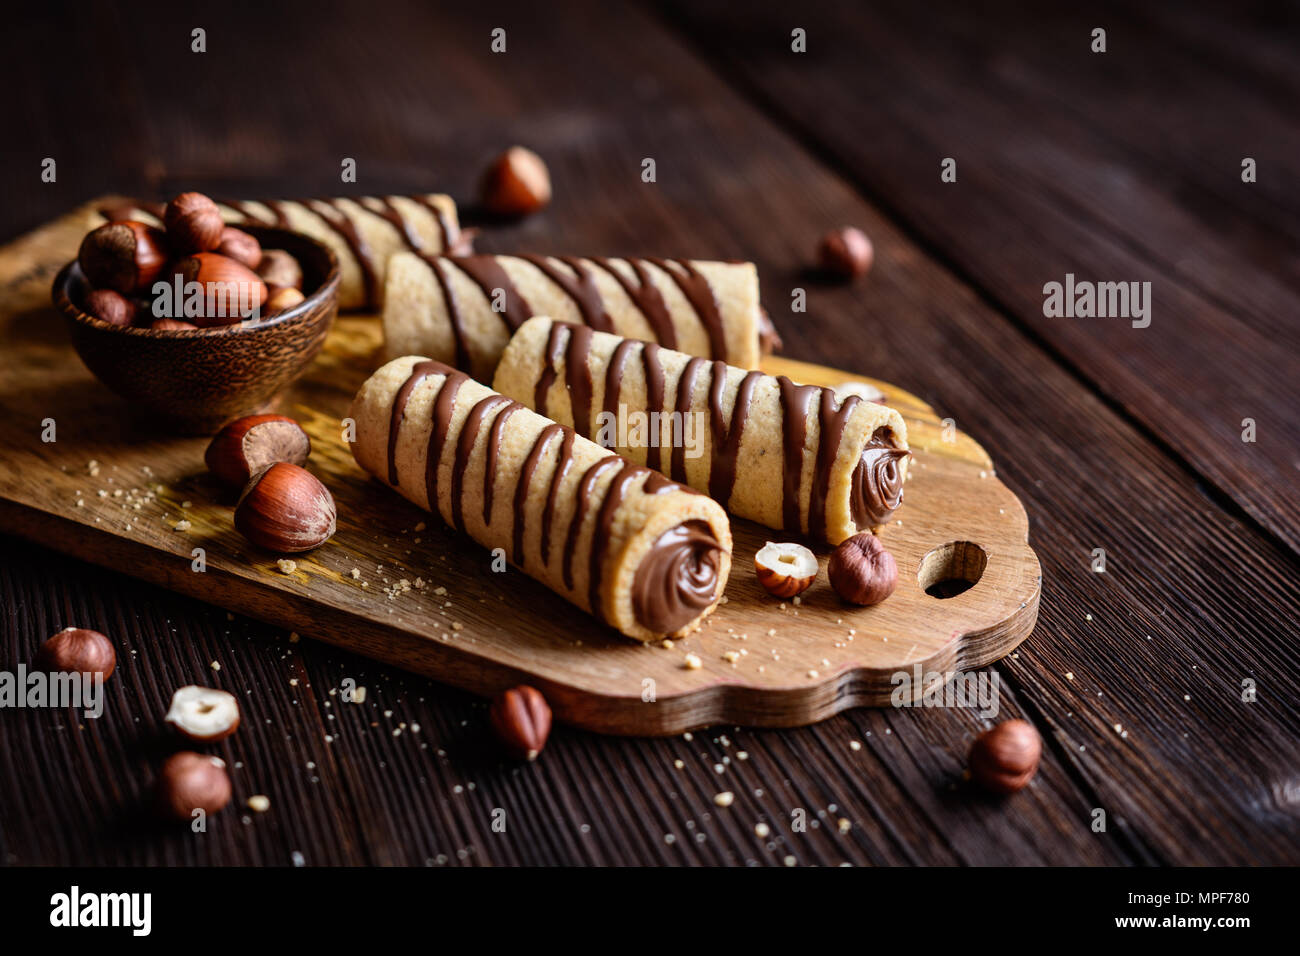 Delicious biscuit tubes filled with hazelnut cream and chocolate topping - Stock Image